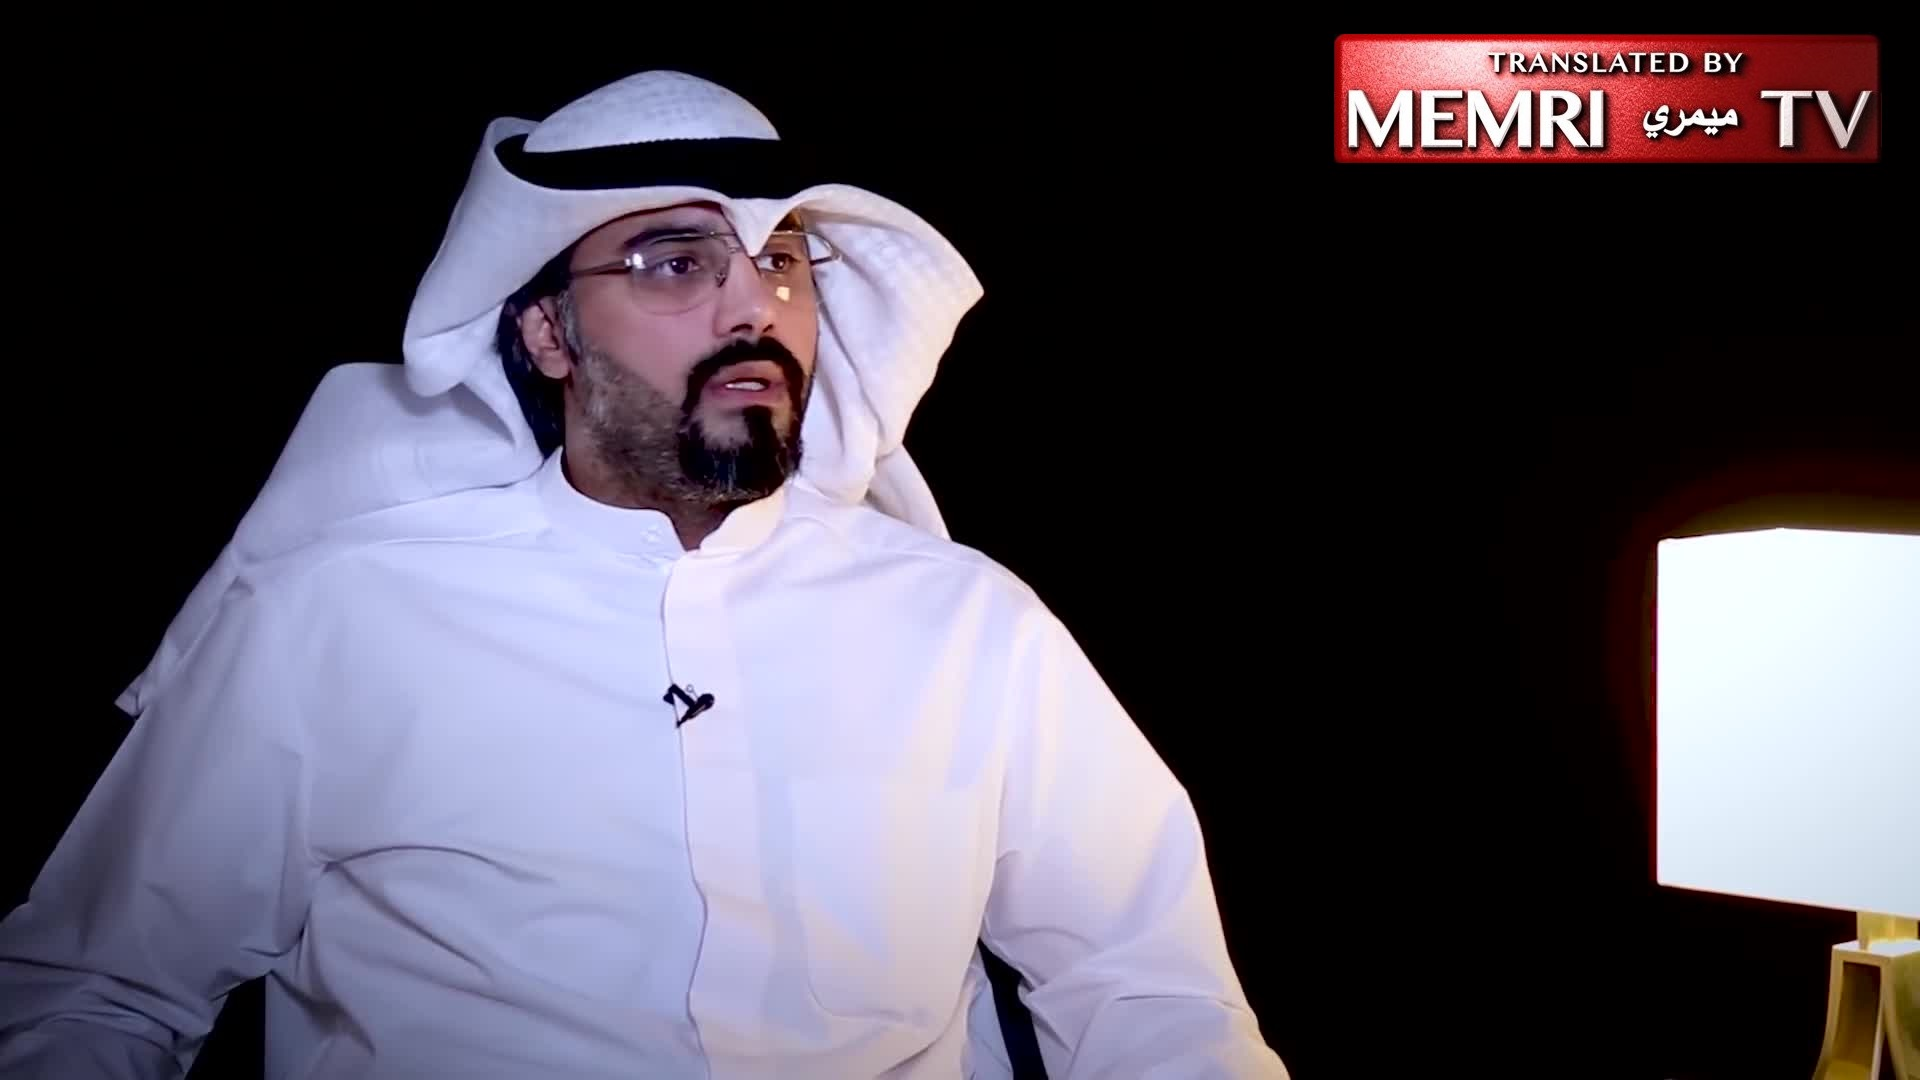 Liberal Kuwaiti Activist Nasser Dashti: We Need Cultural, Secular Reform; Western Societies Are Better Than Ours Because They Admit Their Failures, Learn through Self-Criticism